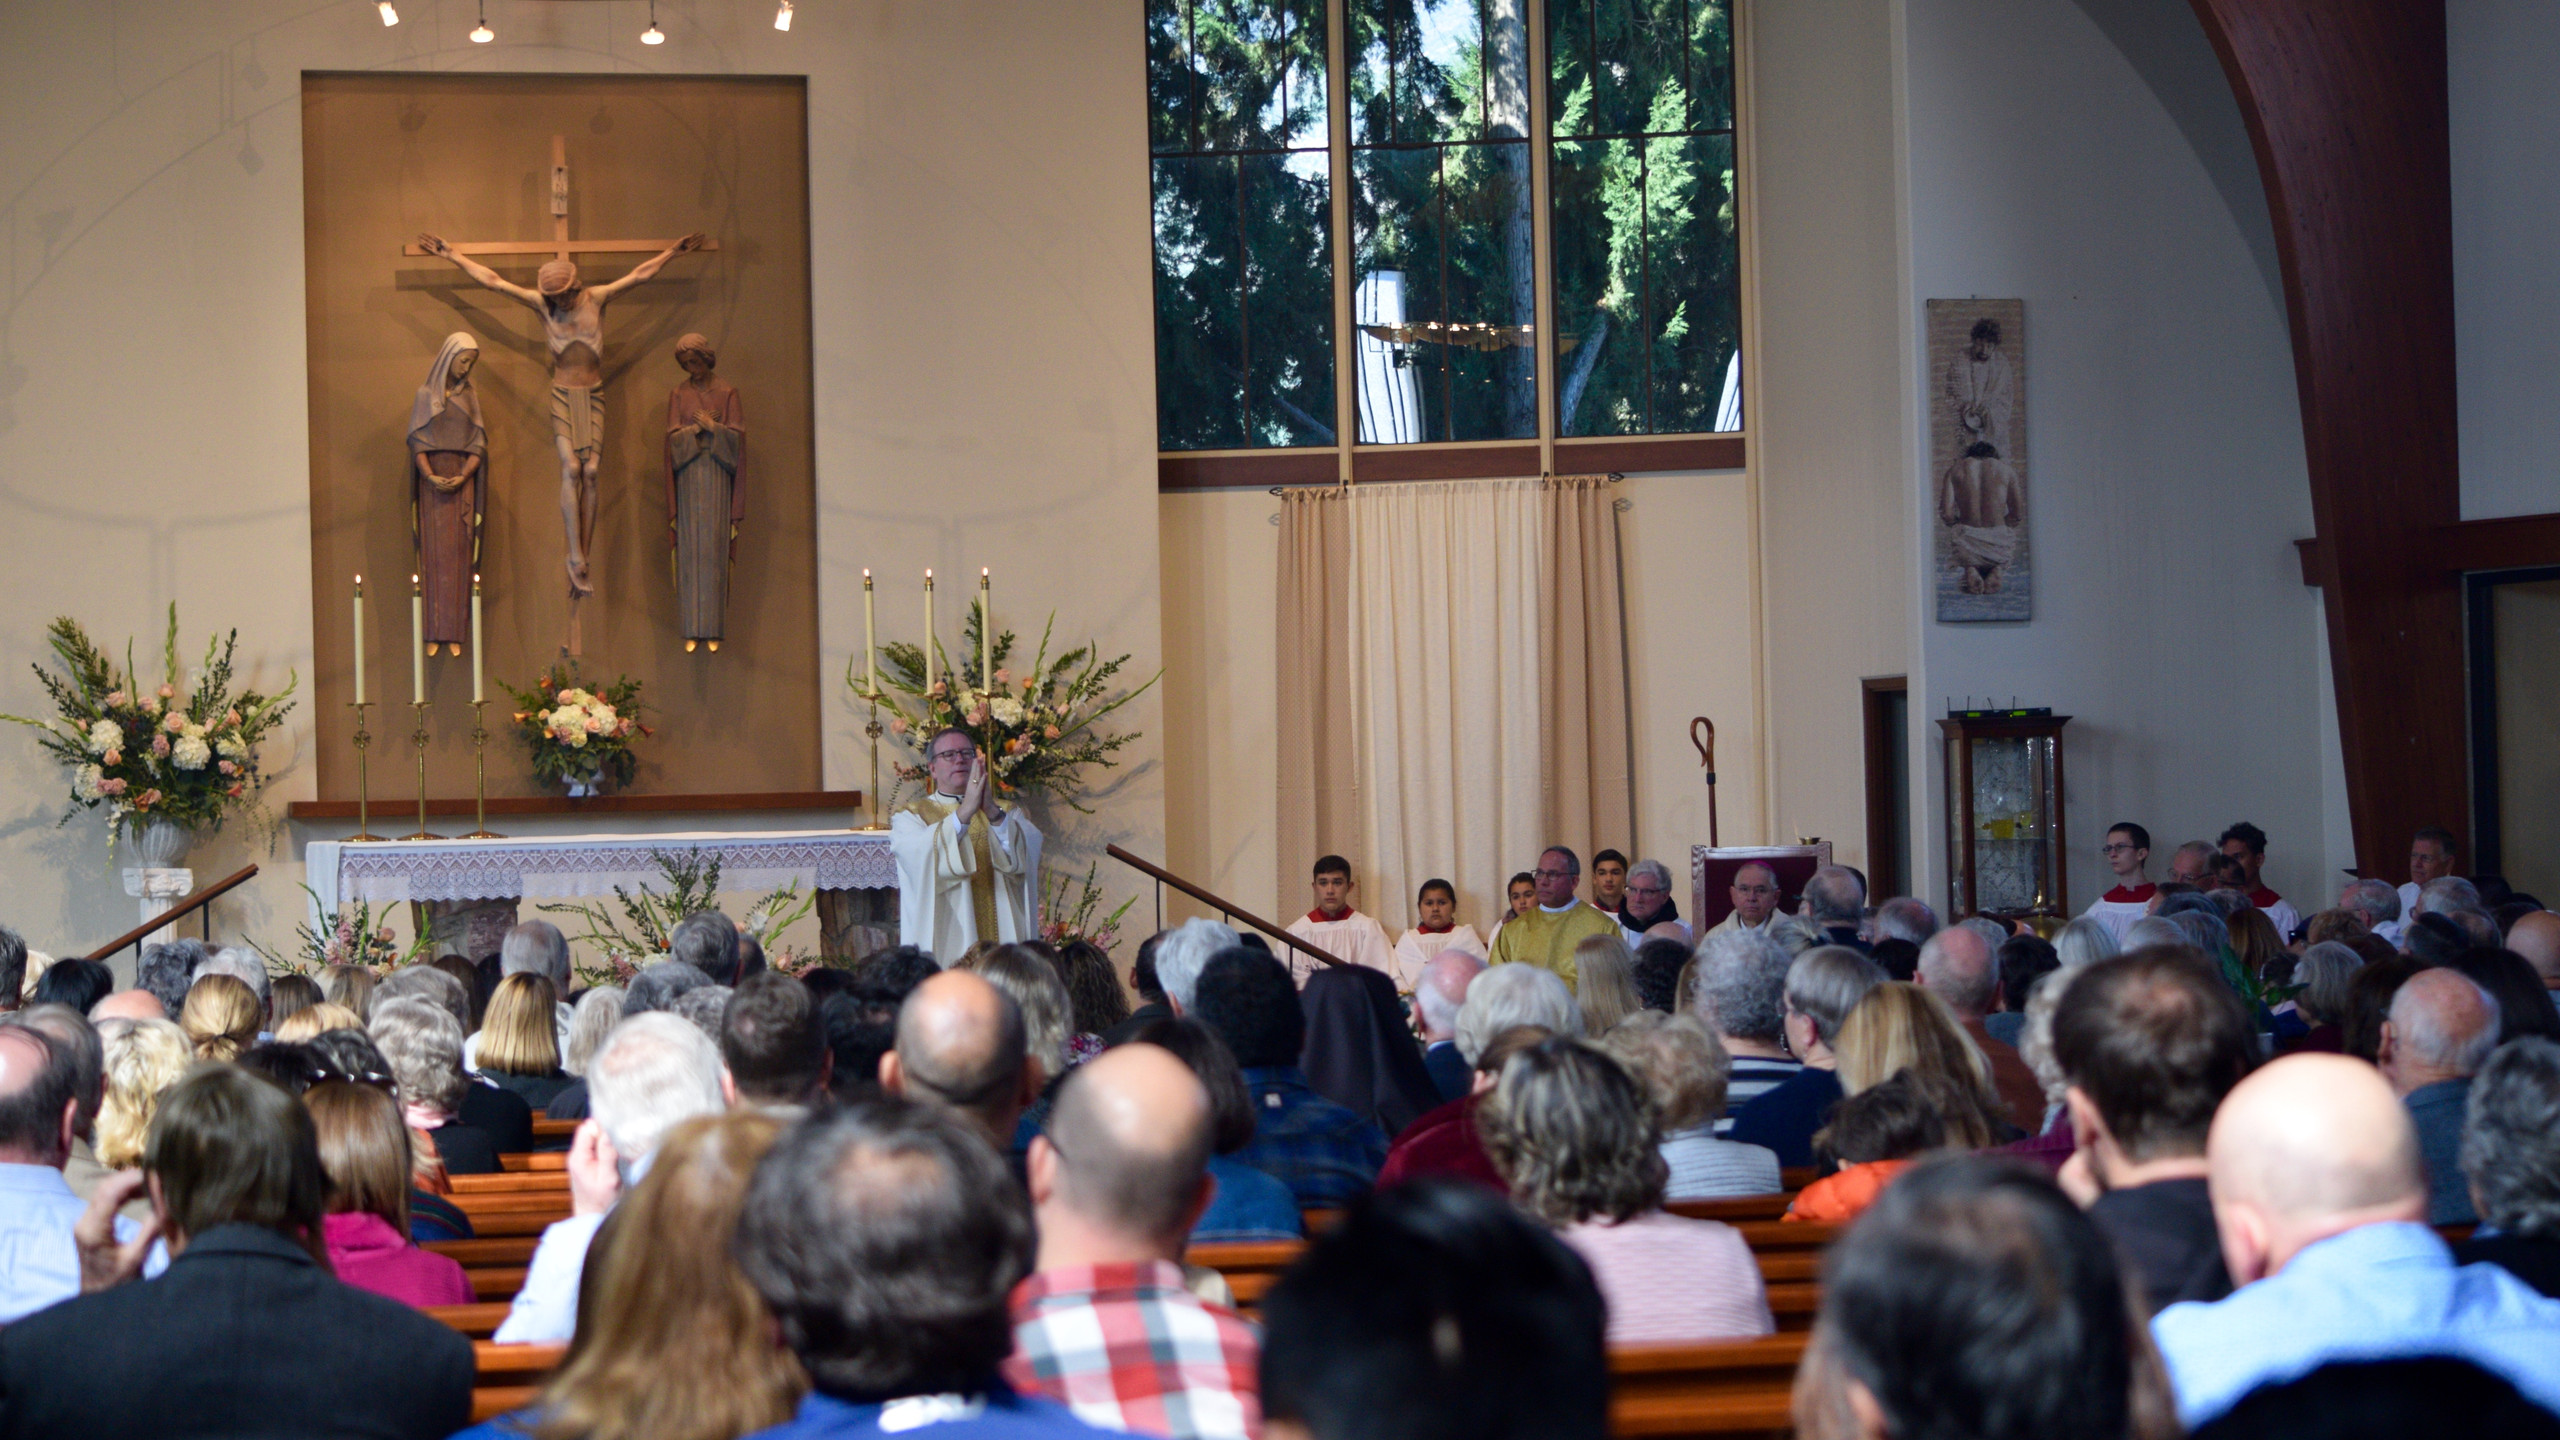 The people gathered for Mass